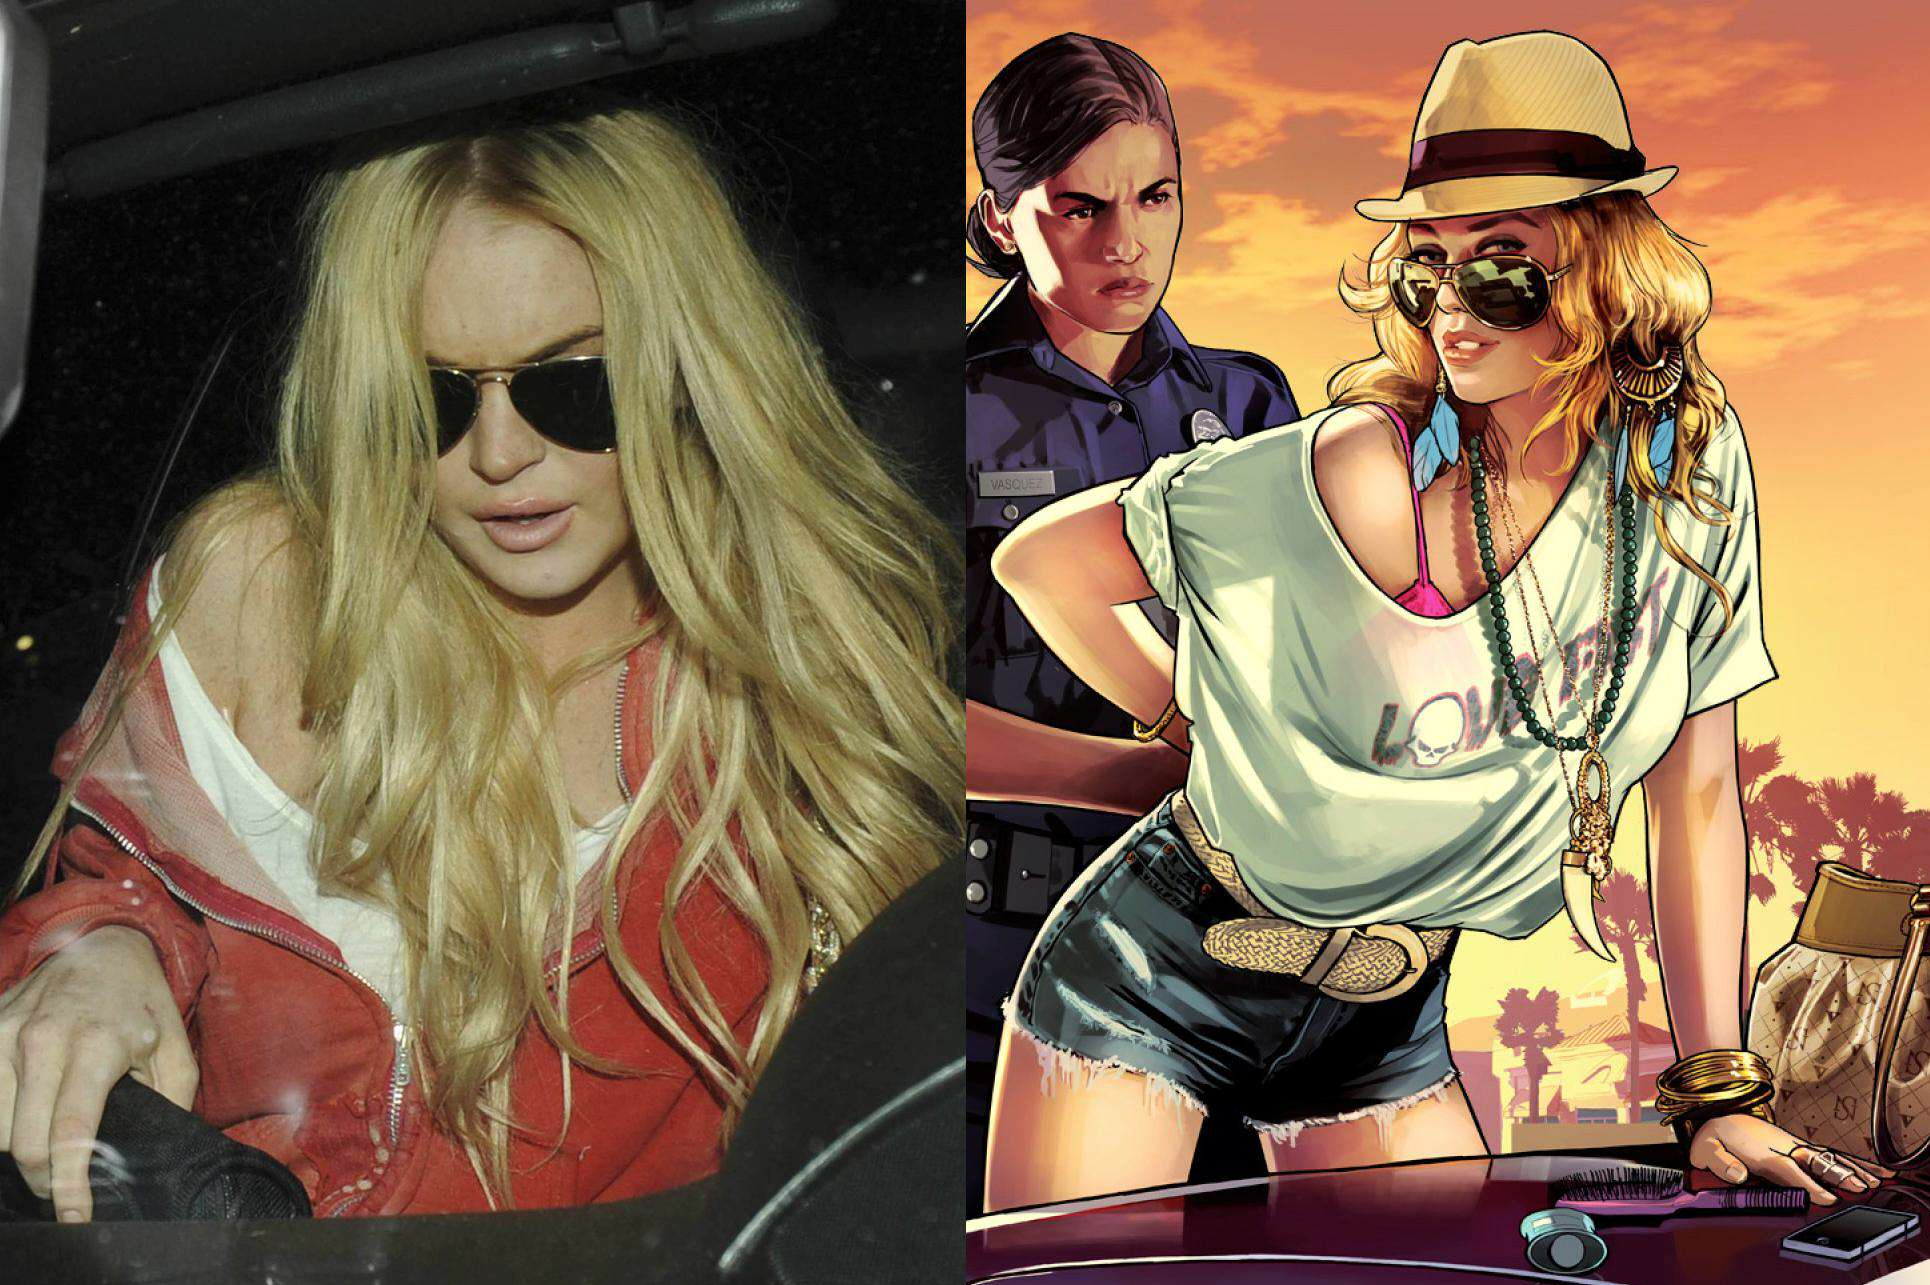 Gta 5 Cartoon Characters : Bizarre lindsay lohan gta v lawsuit moves forward